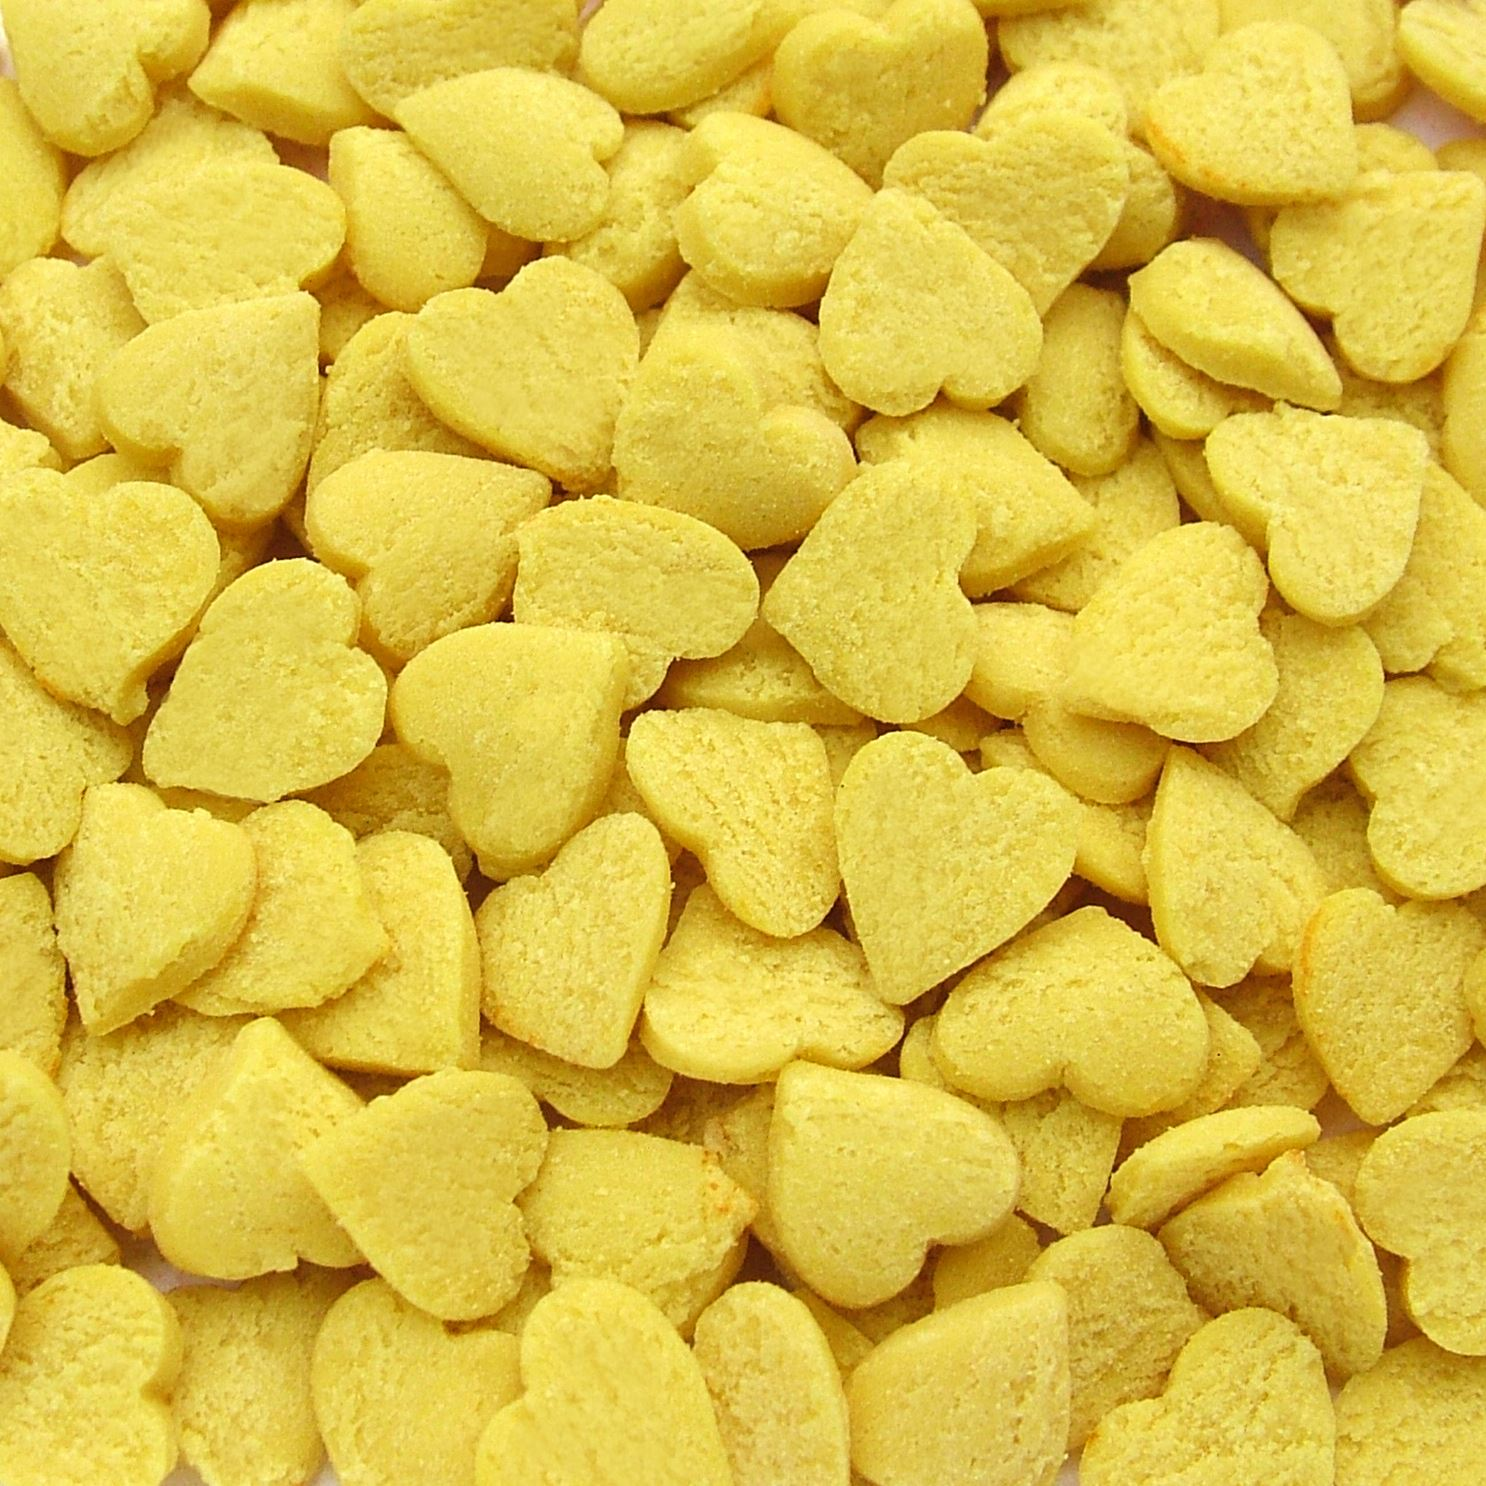 Edible Cake Decorations Hearts : Edible Cupcake Cake Sprinkles Decorations Confetti Hearts ...